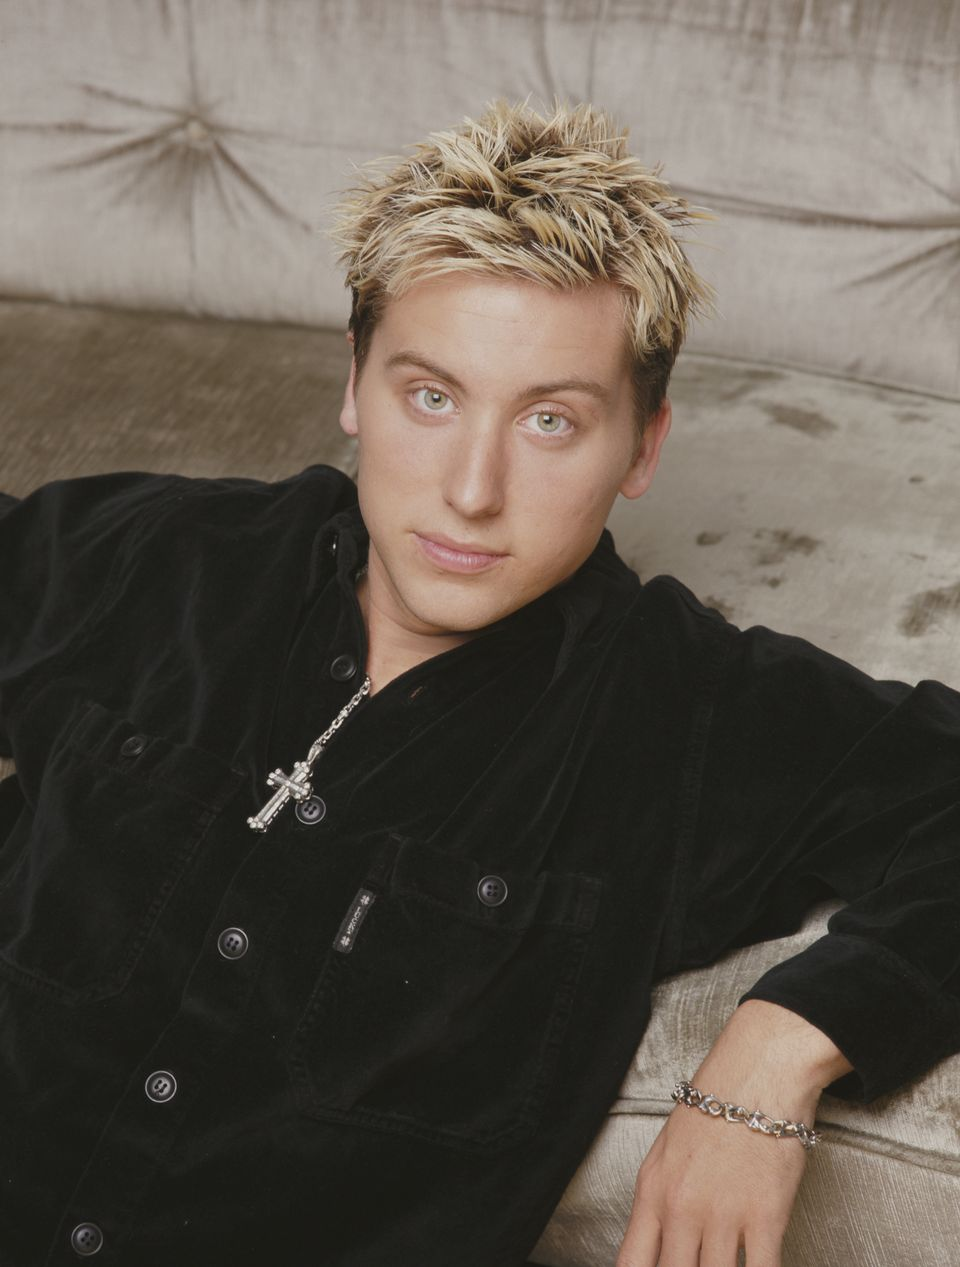 Lance Bass poses for a photo in